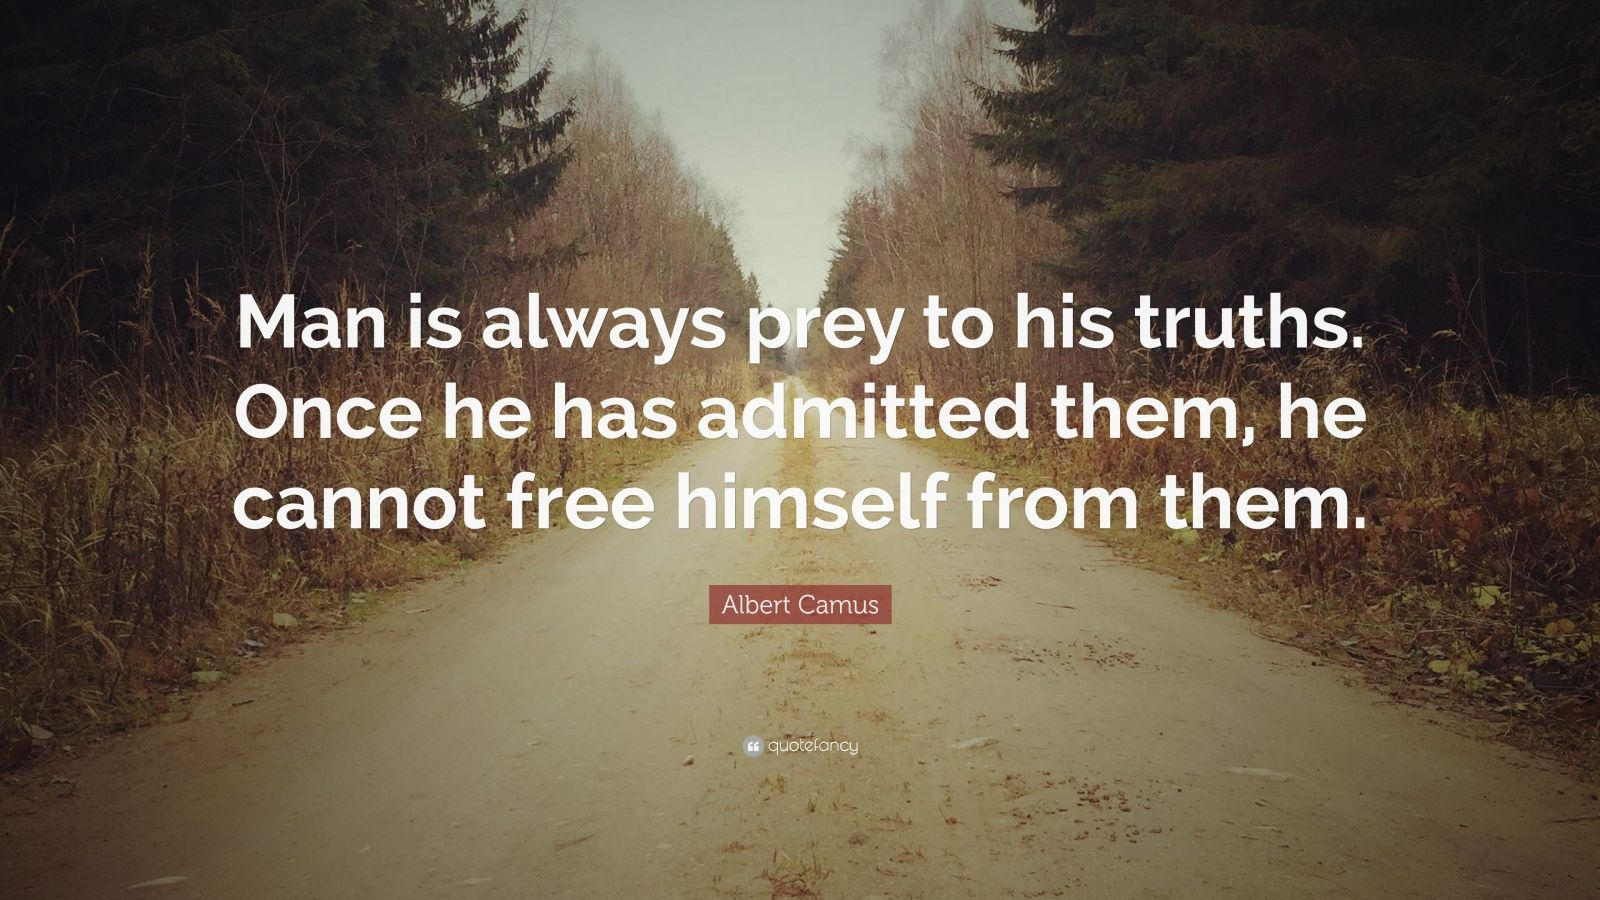 """Albert Camus Quote: """"Man is always prey to his truths. Once he has admitted them, he cannot free himself from them."""""""